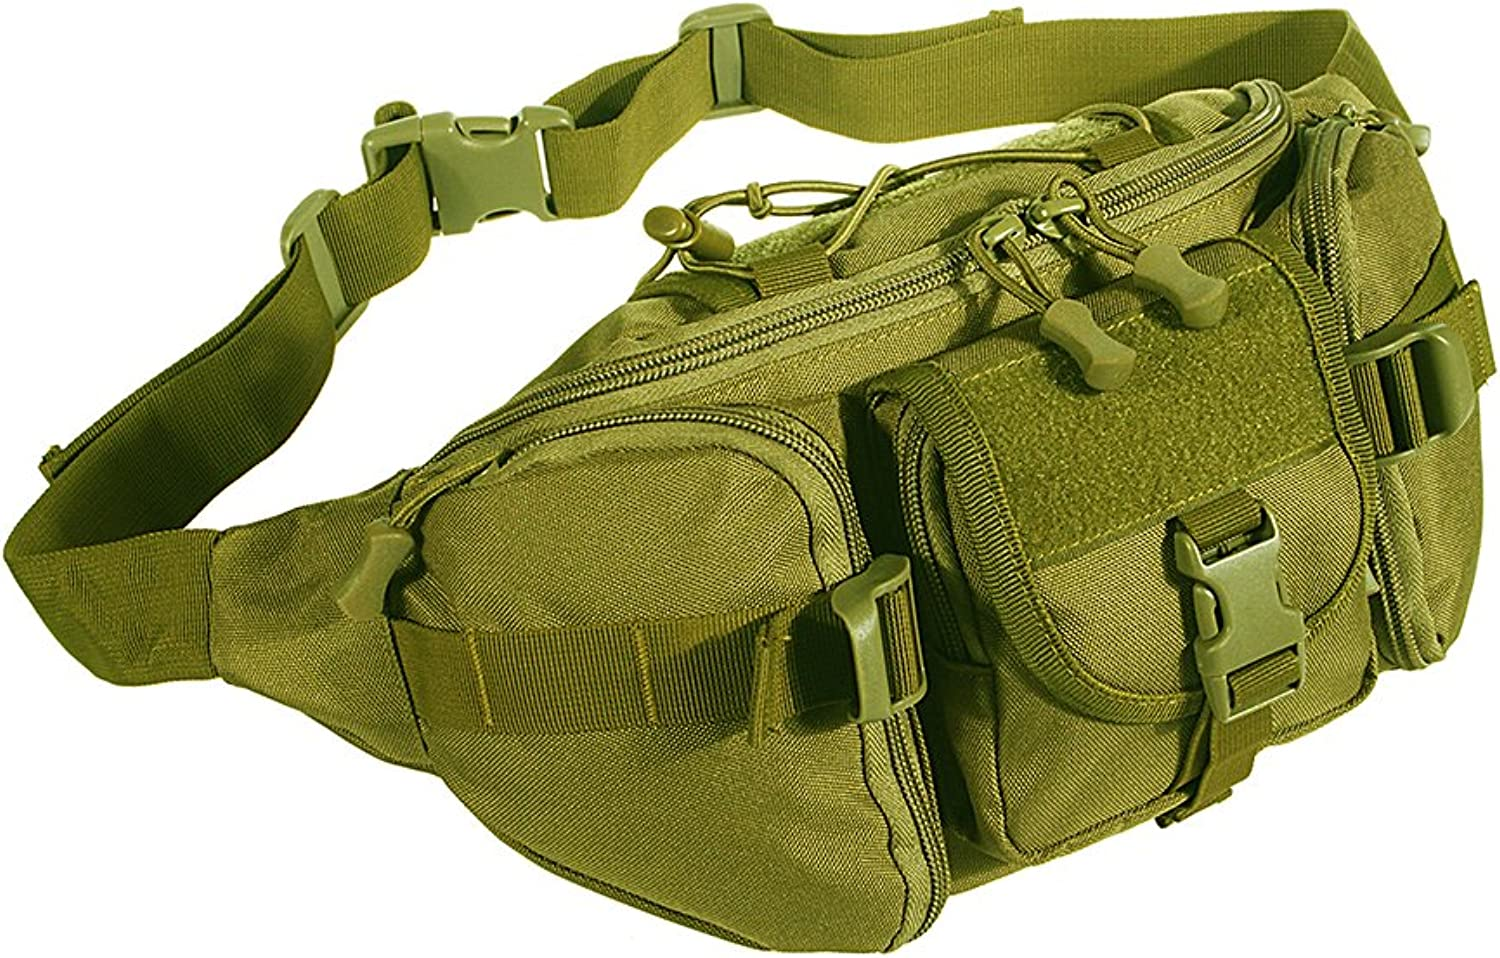 (DE) - Outdoor Tactical Military Waist Pack Bag Packs Waterproof Hip Belt Bag Pouch Travel Hiking Climbing Hunting